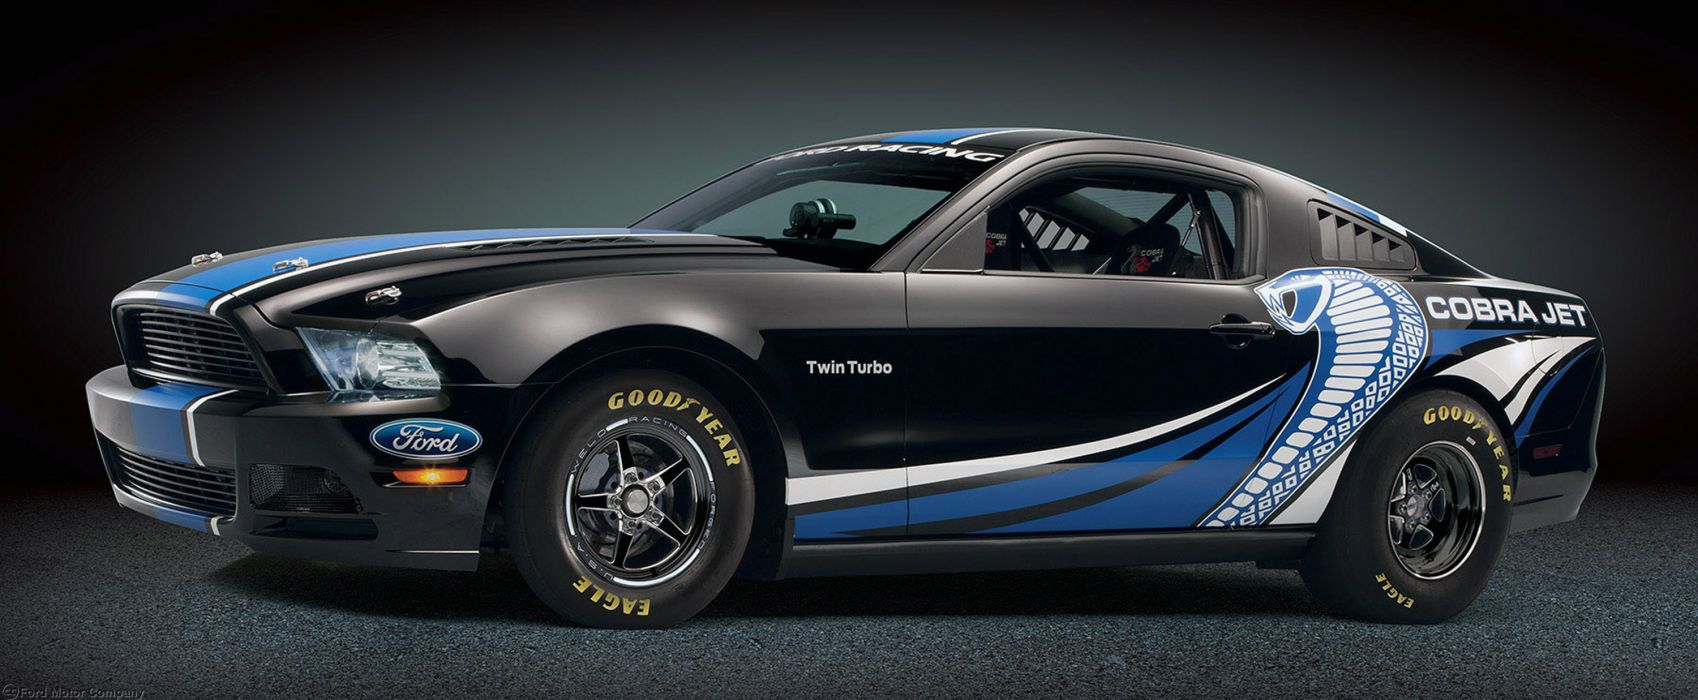 2013 Ford Mustang Cobra Jet Twin-Turbo Concept race racing hot rod rods muscle u wallpaper